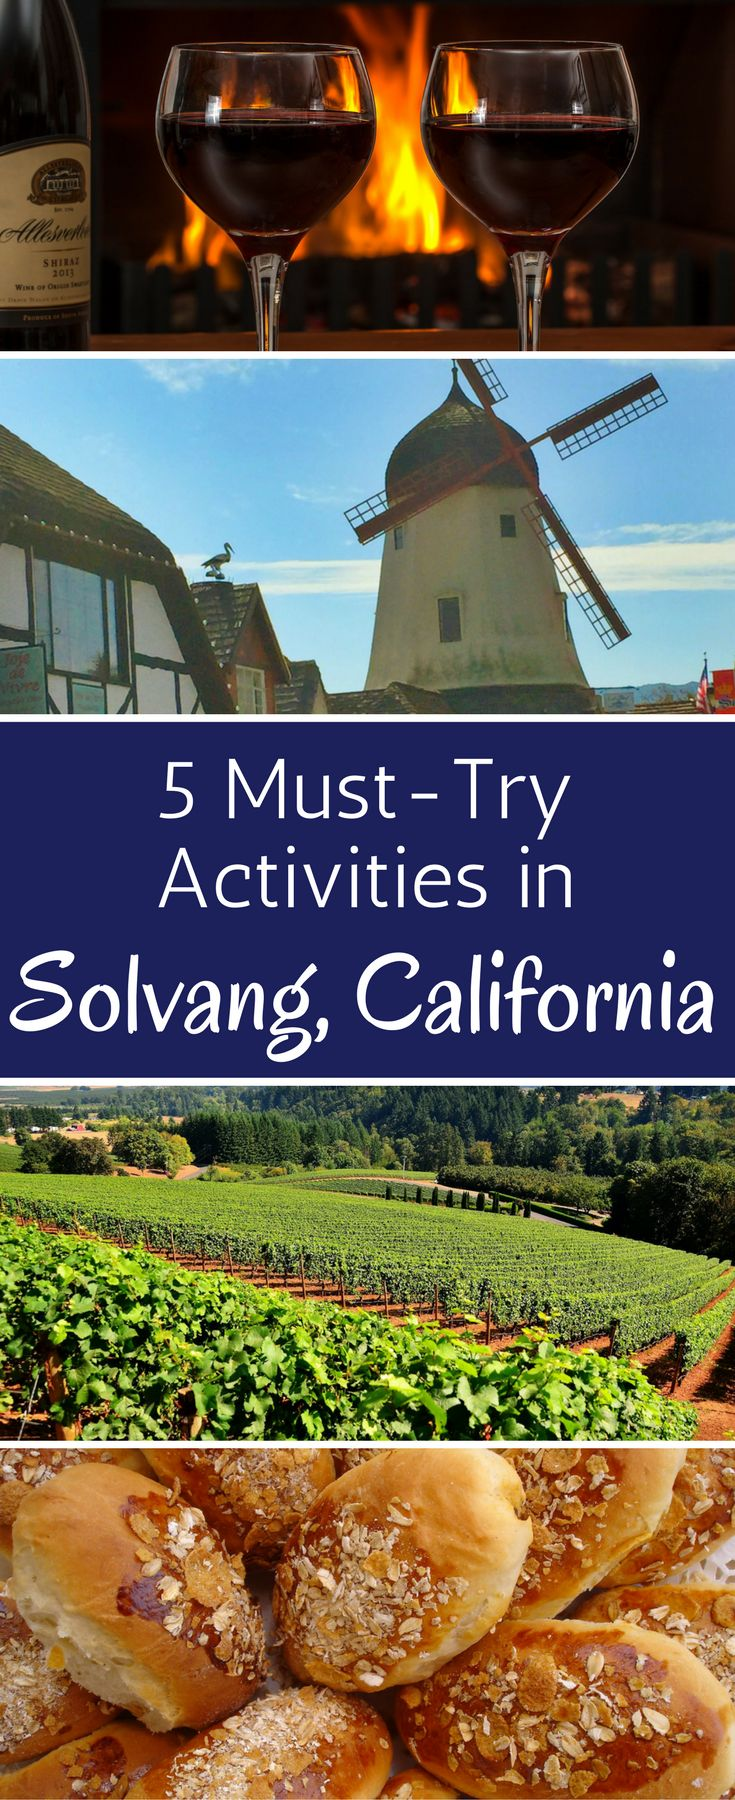 attractions in Solvang, California; what to do in Solvang, California; Solvang, California day trip; Solvang in one day